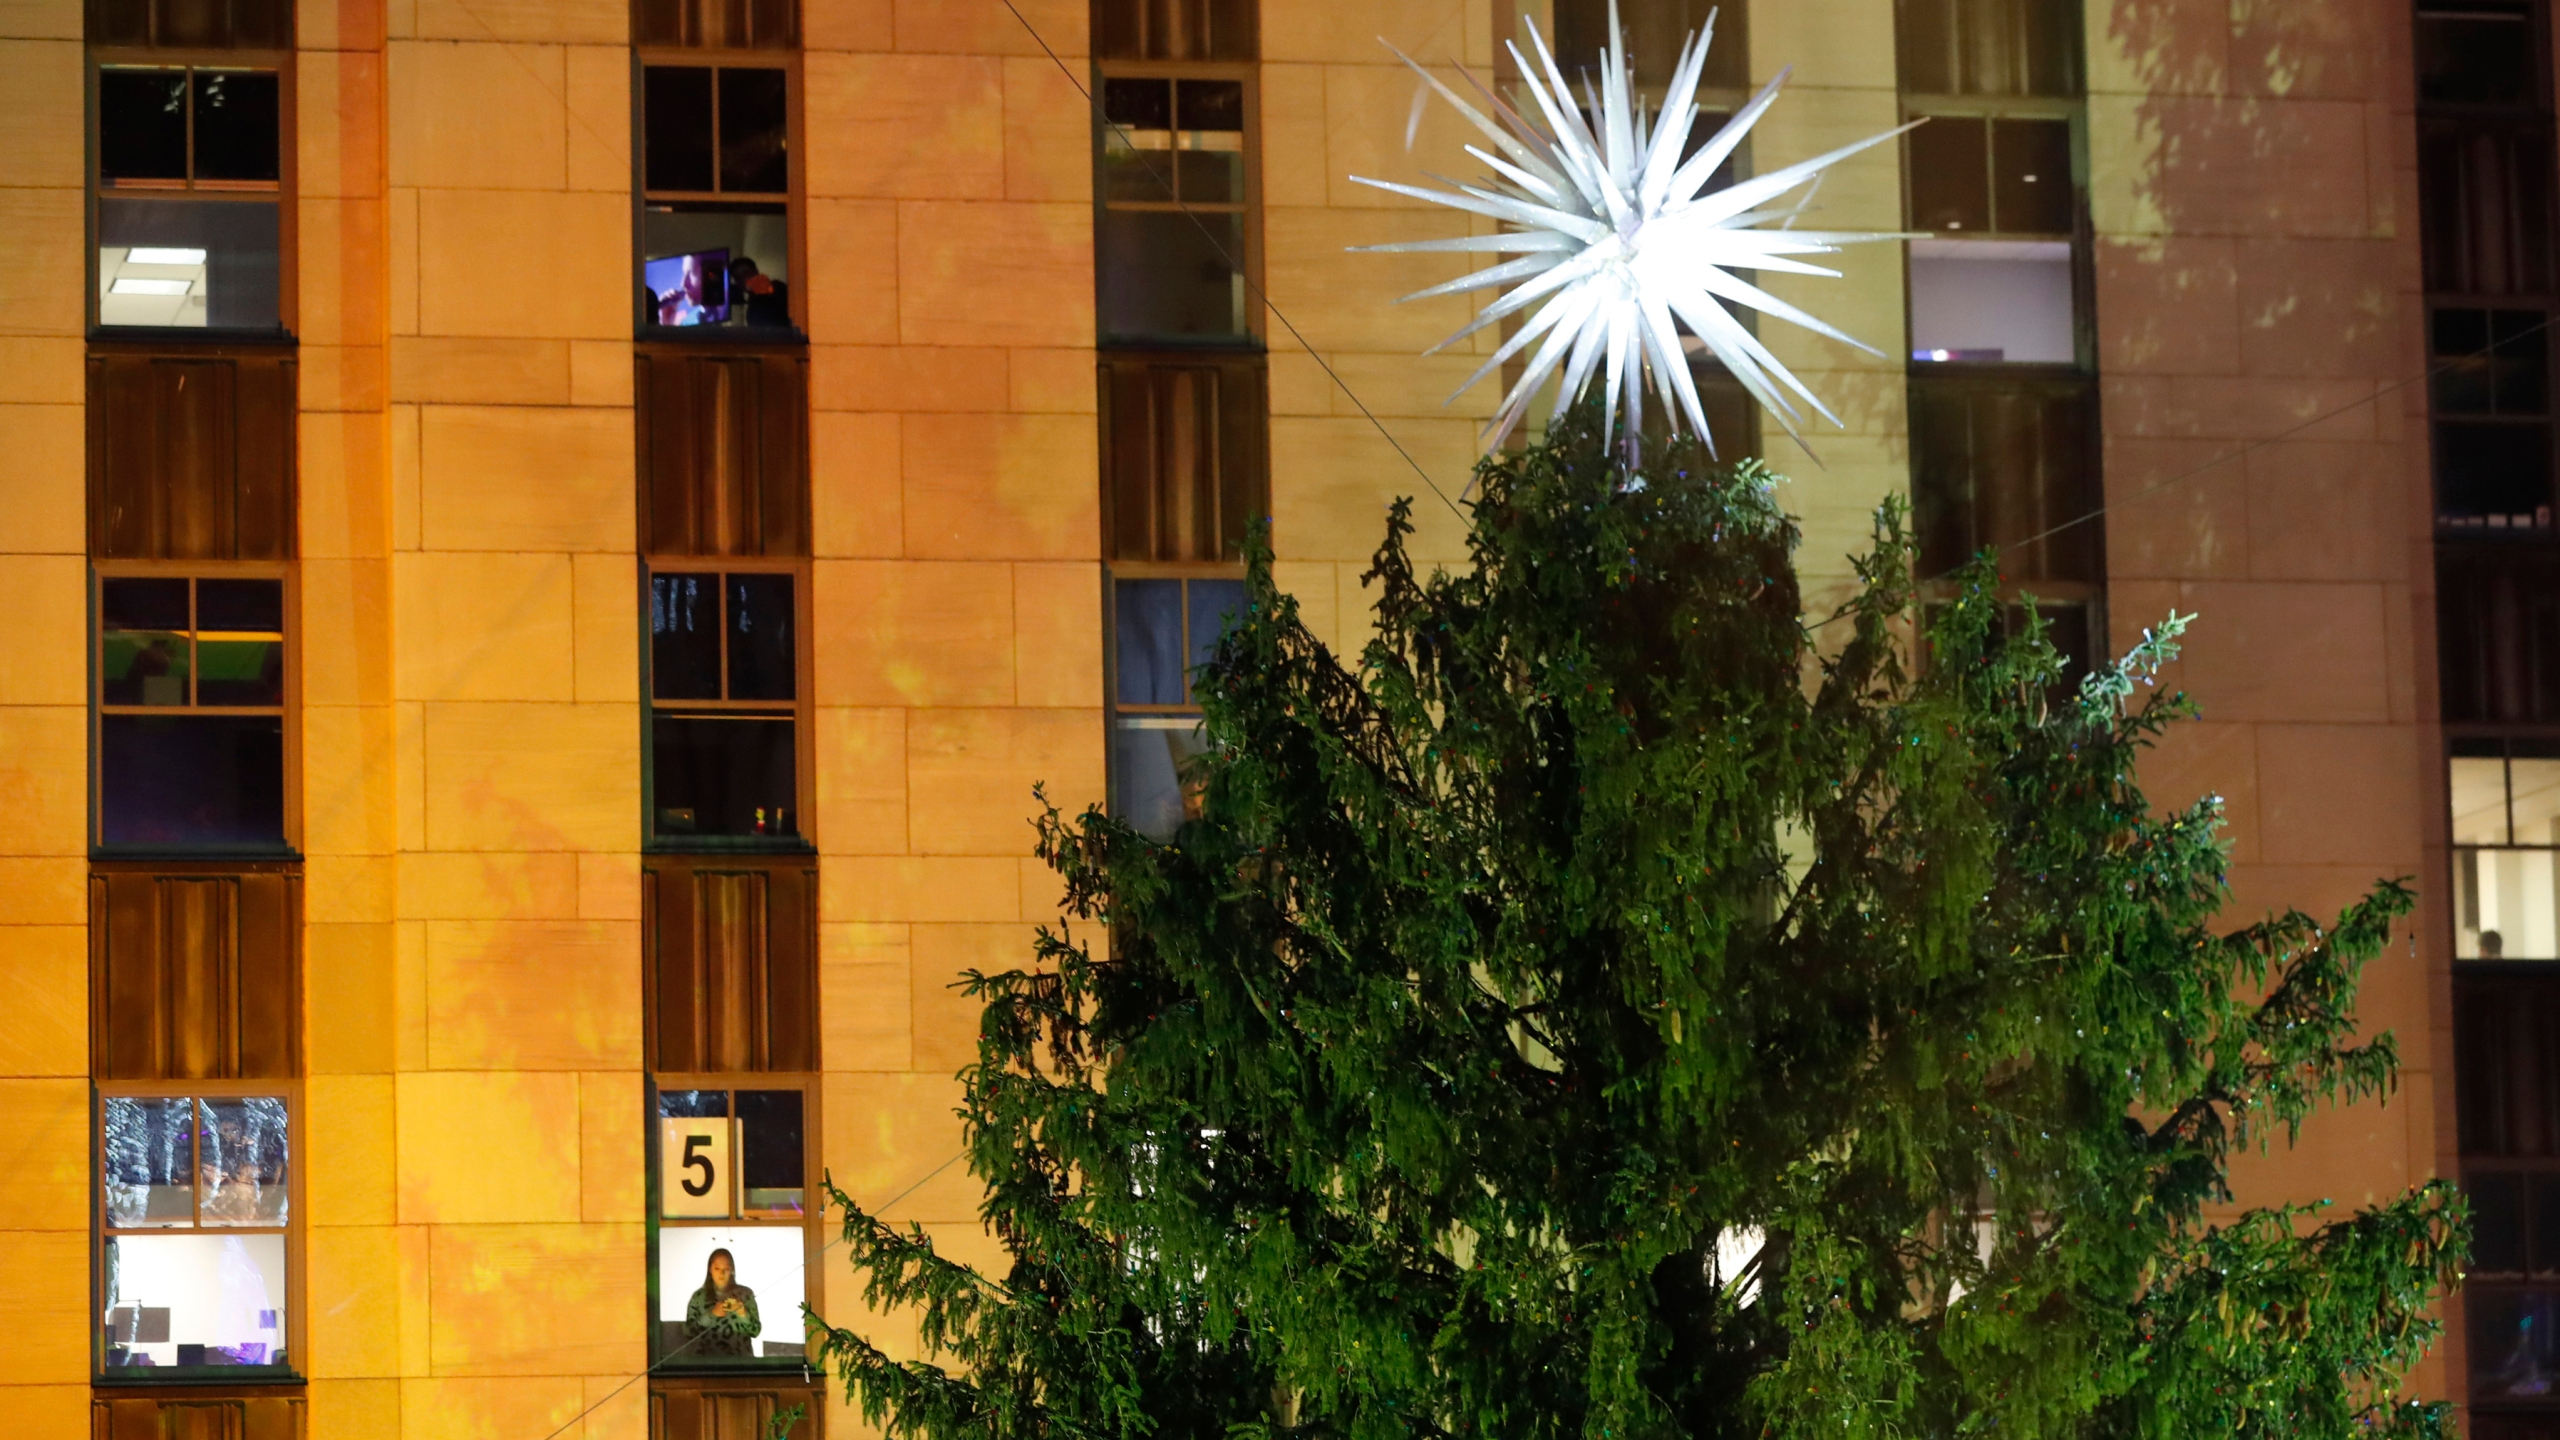 tis the season rockefeller center christmas tree lights up klbk kamc everythinglubbock com 2